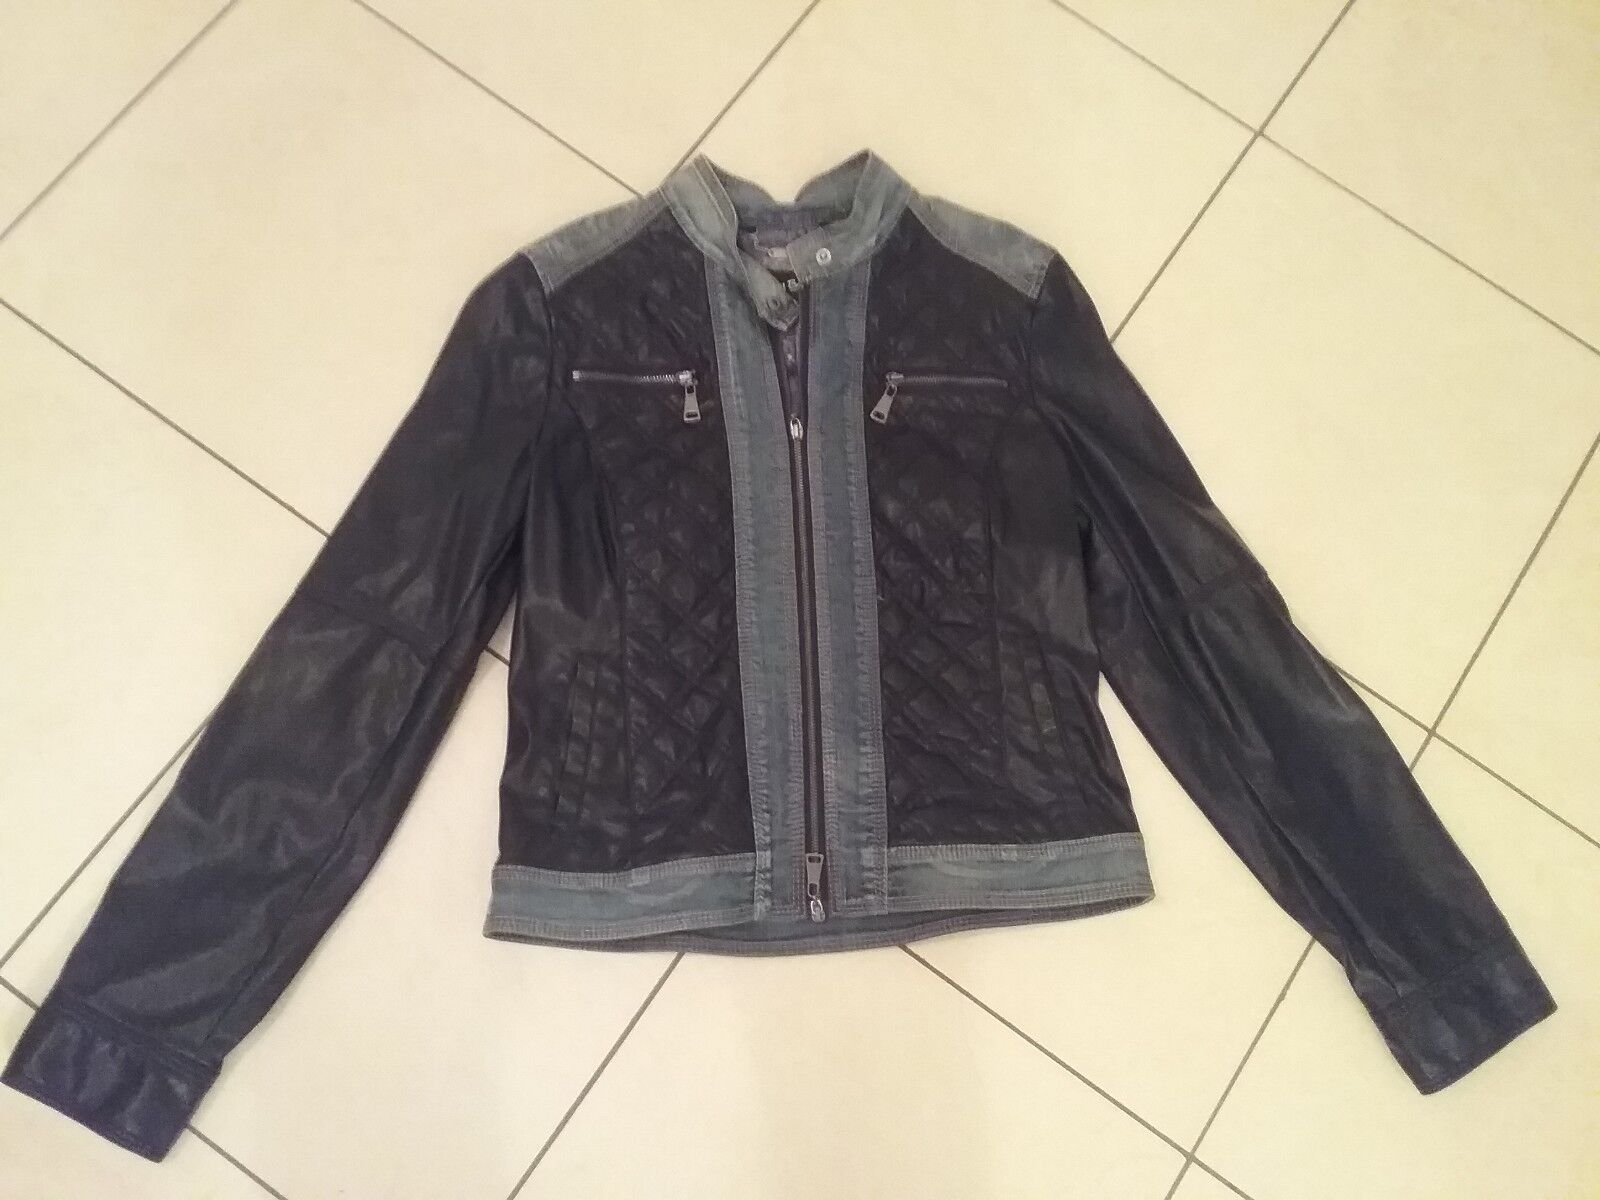 Betty Barcley Damen Jeans  Lederimitatjacke Bikerjcke brandneu Grösse 36